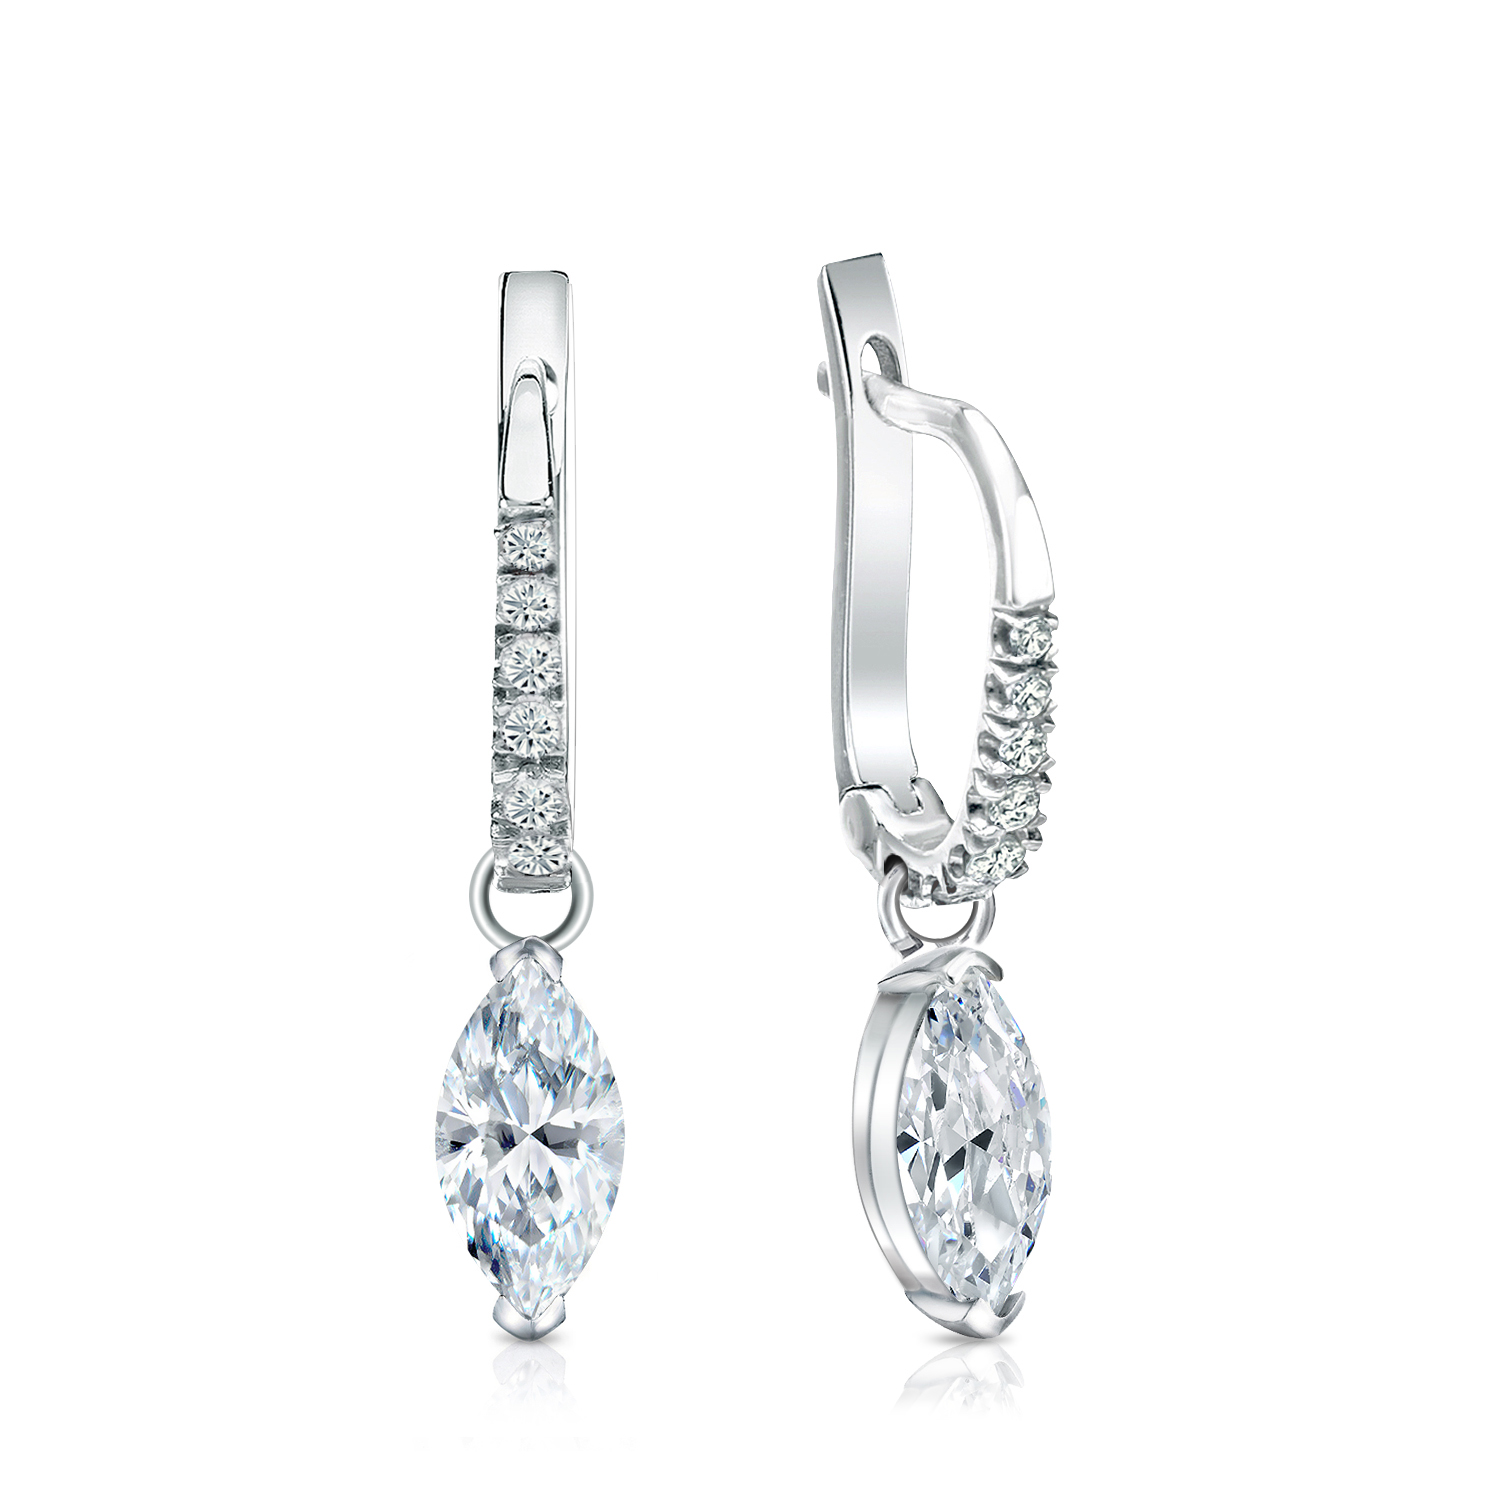 Certified 14k White Gold V-End Prong Marquise Diamond Drop Earrings 1.50 ct. tw. (G-H, VS)